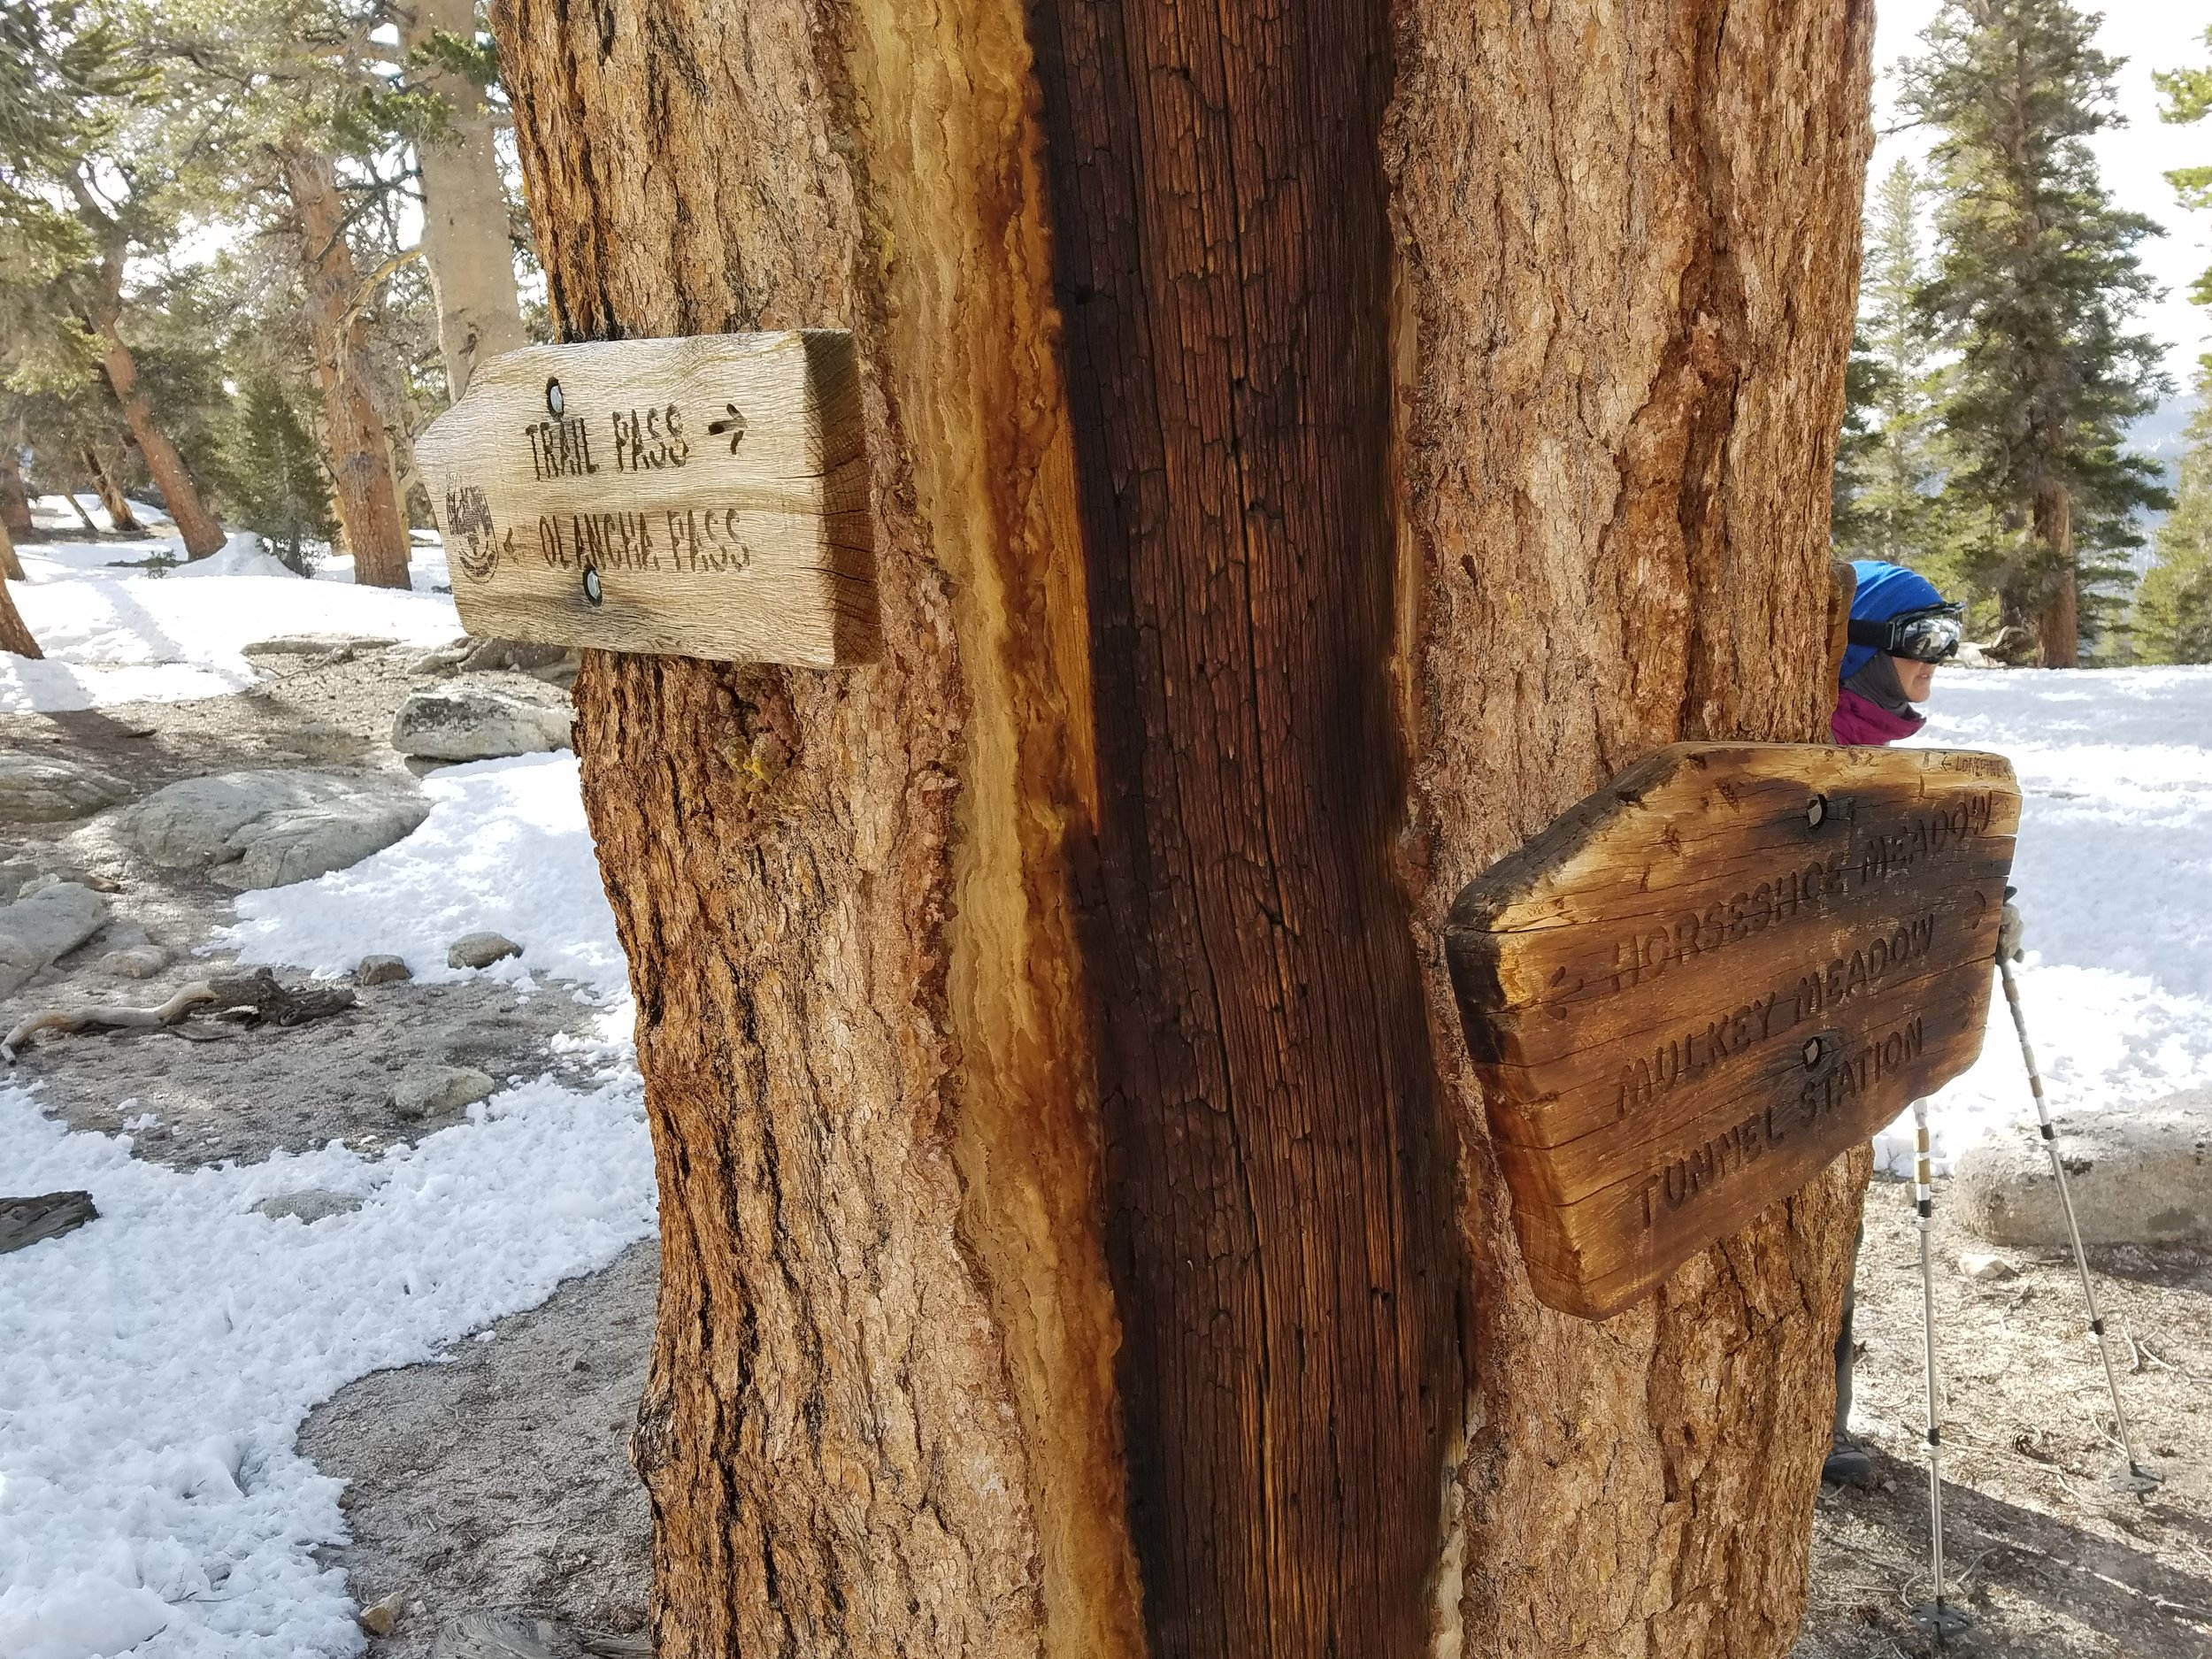 Trail sign at Mulkey Pass headed to Trail Pass, our first potential bail point.